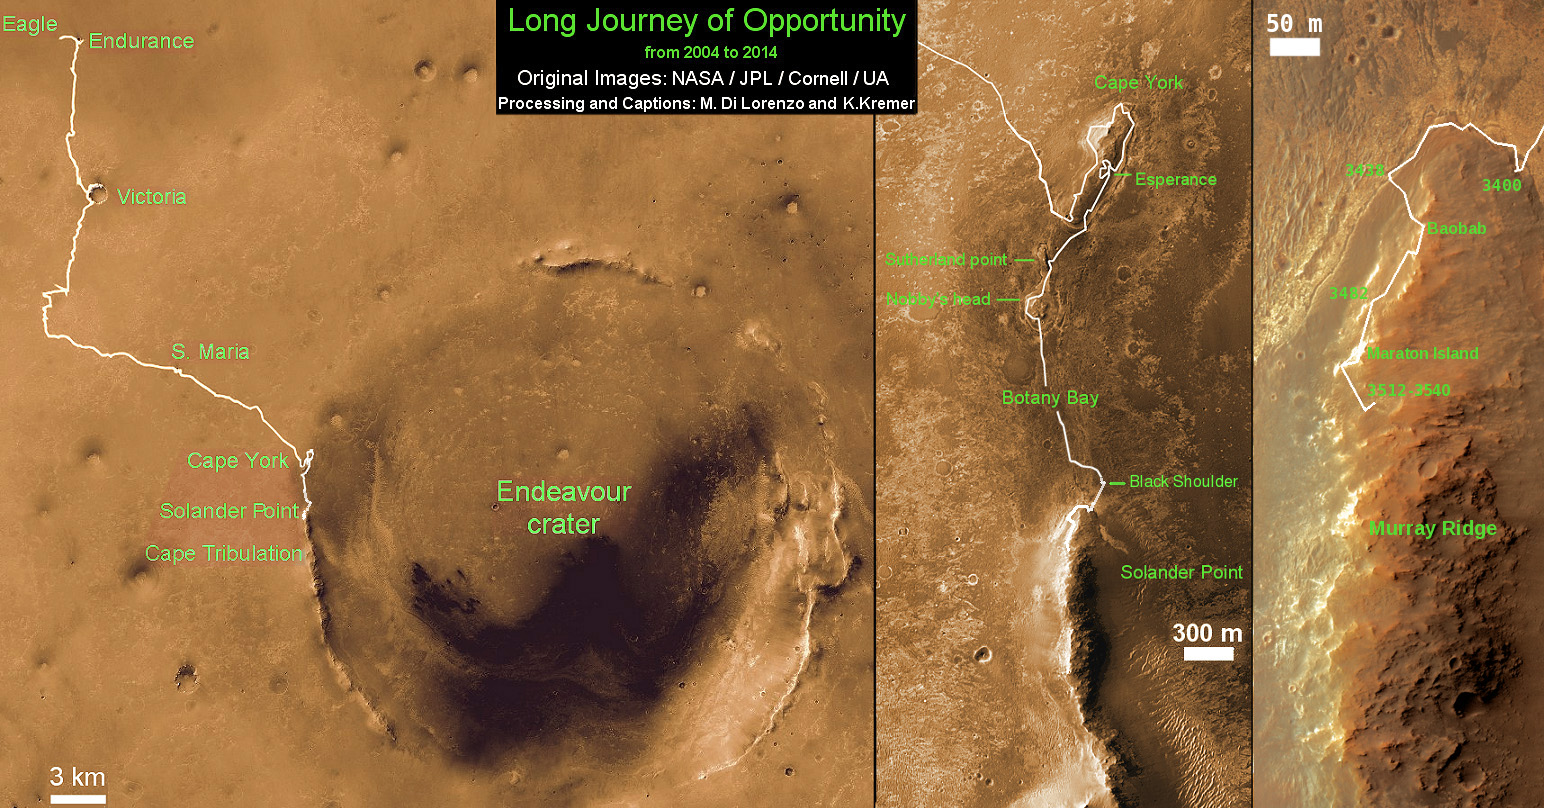 Opportunity-Route-map_Sol-3540_Ken-Kremer